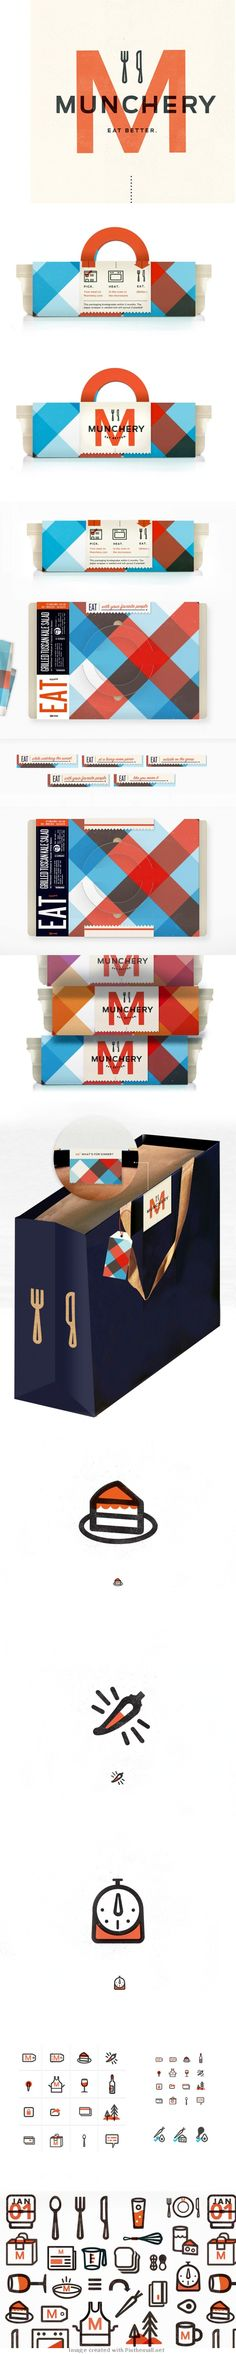 Munchery | Kelli Anderson. Time for lunch #identity #packaging #branding PD